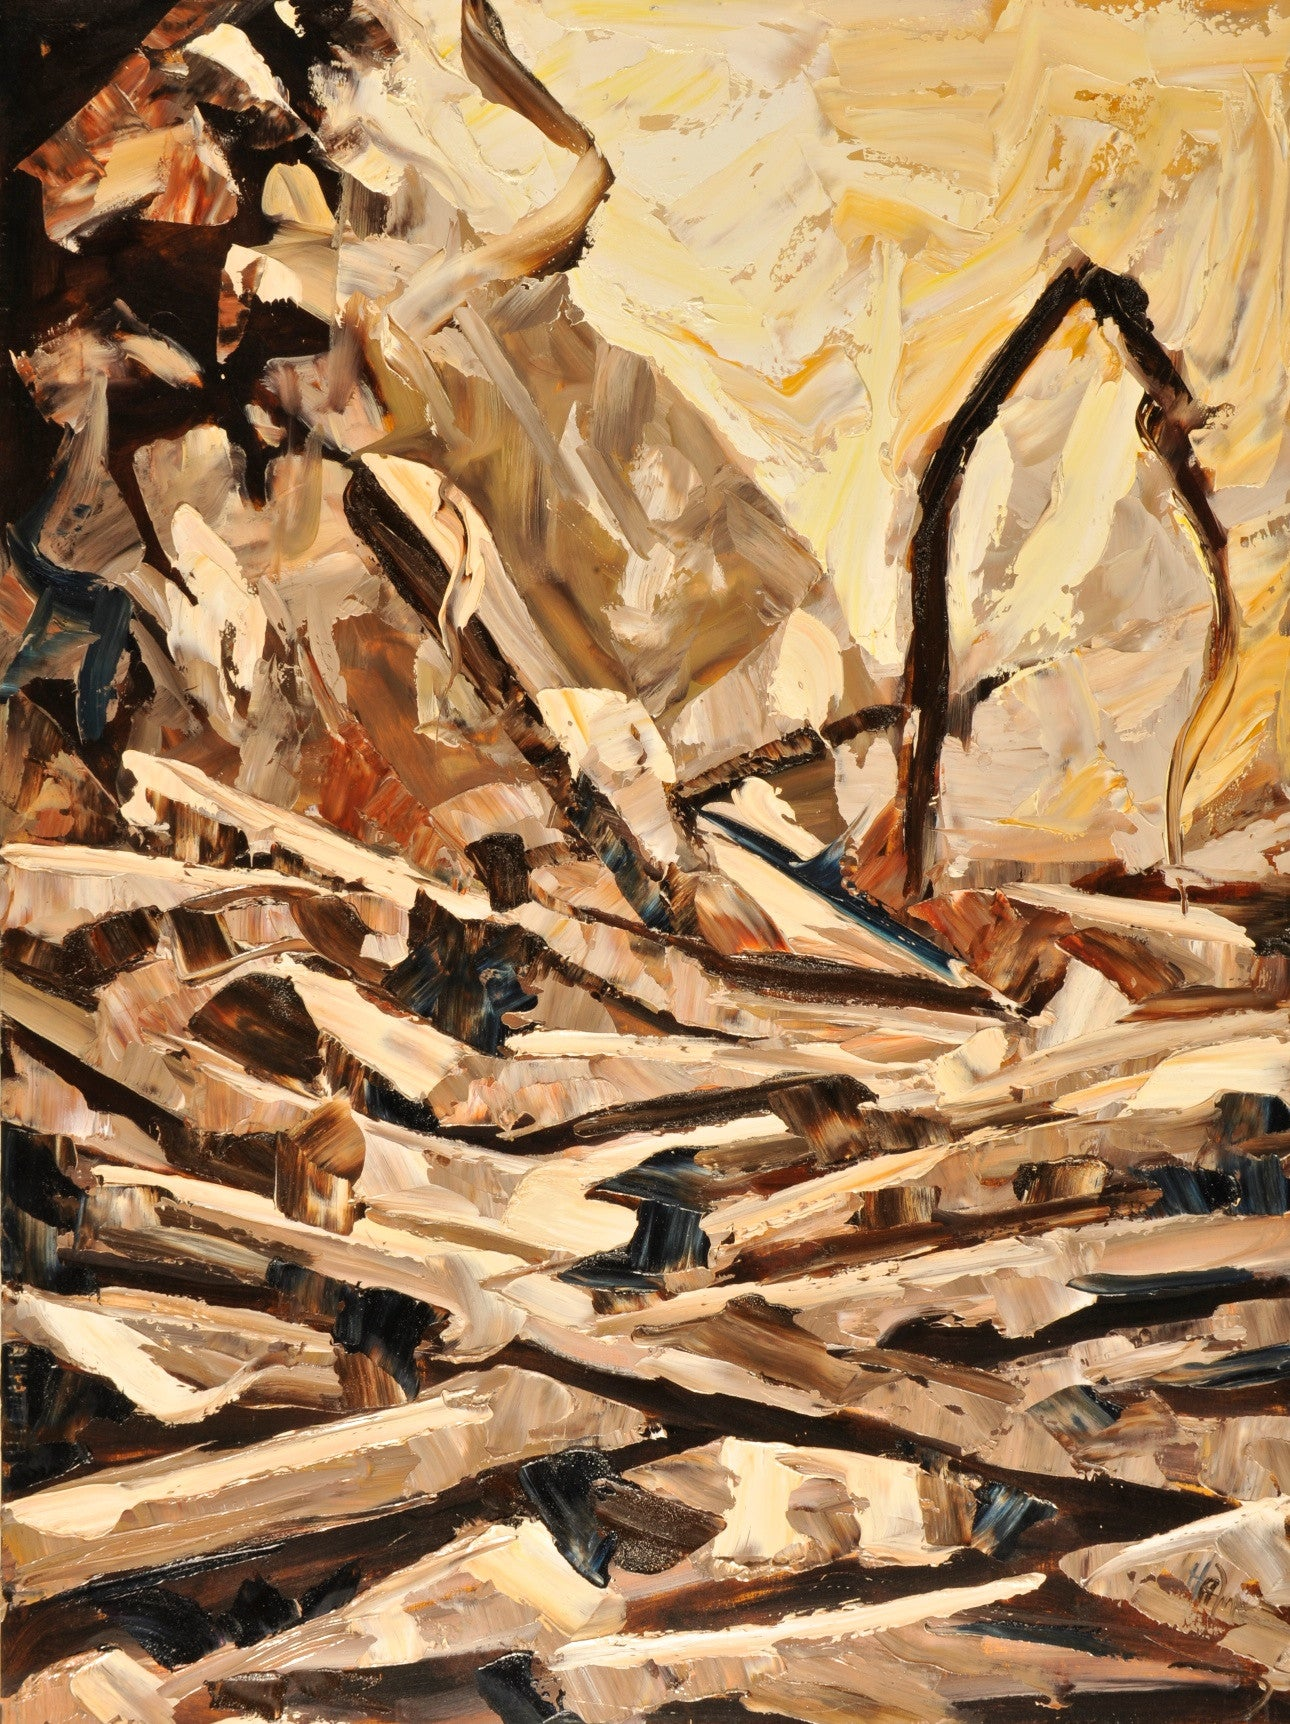 Wood Jam Scape - Halin de Repentigny - painting